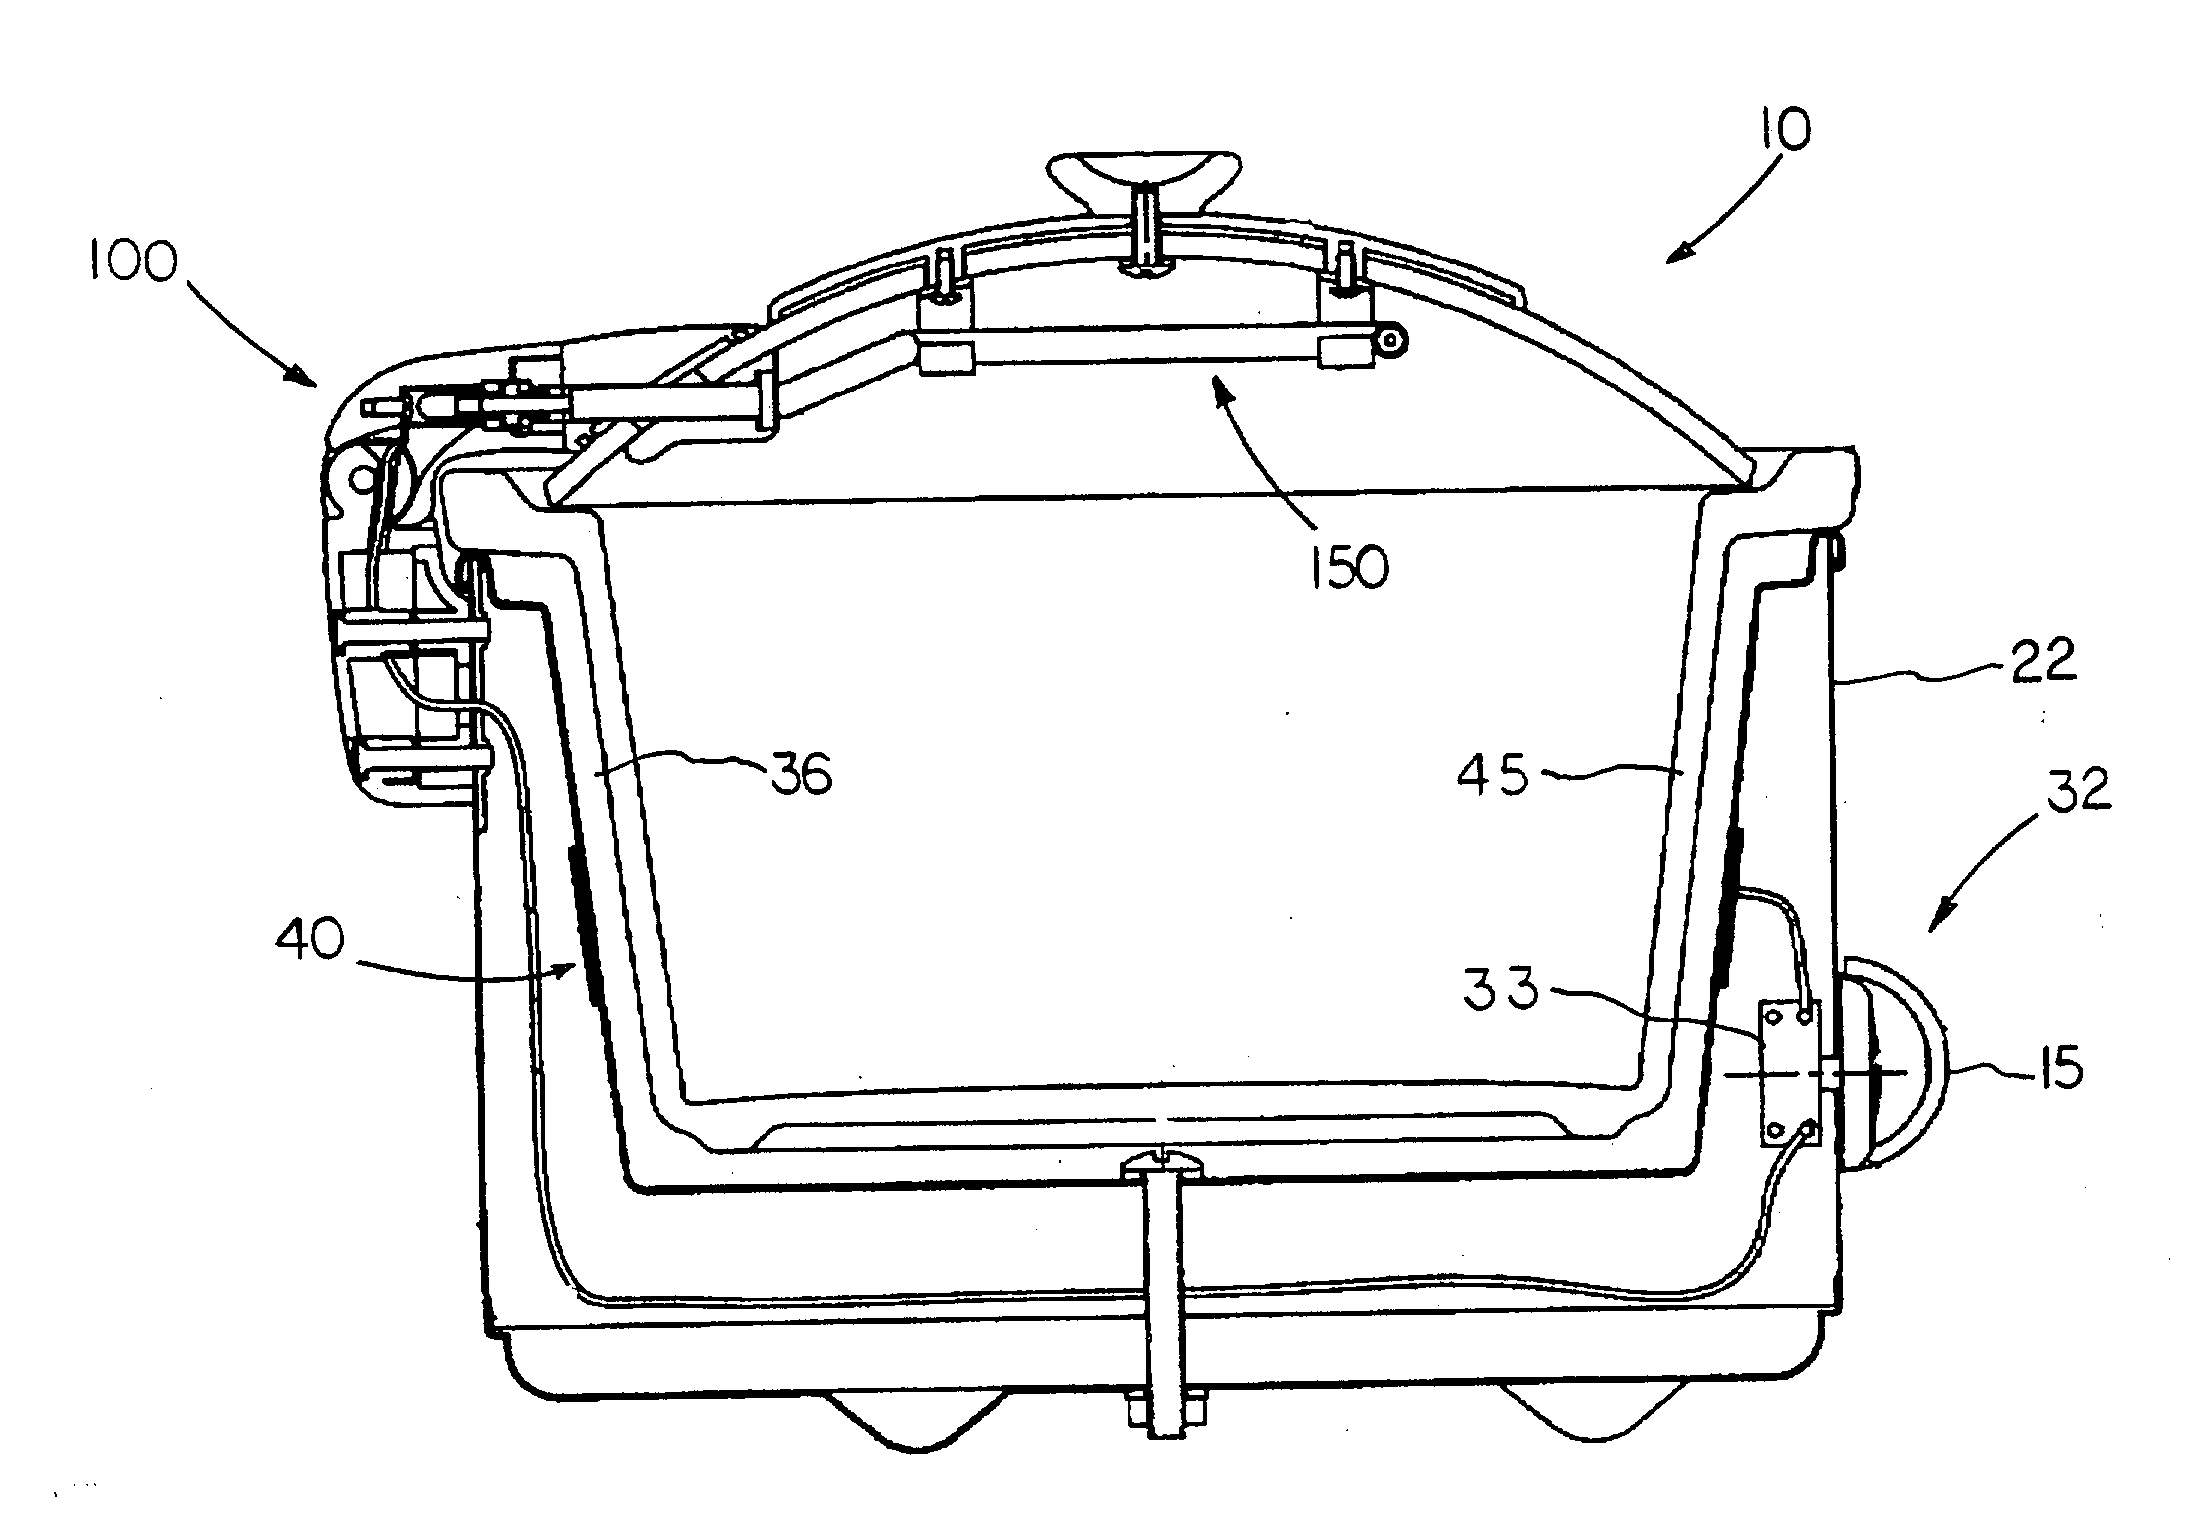 US20040159649A1 20040819 D00000 patent us20040159649 slow cooker with dual heating elements crock pot wiring diagram at readyjetset.co